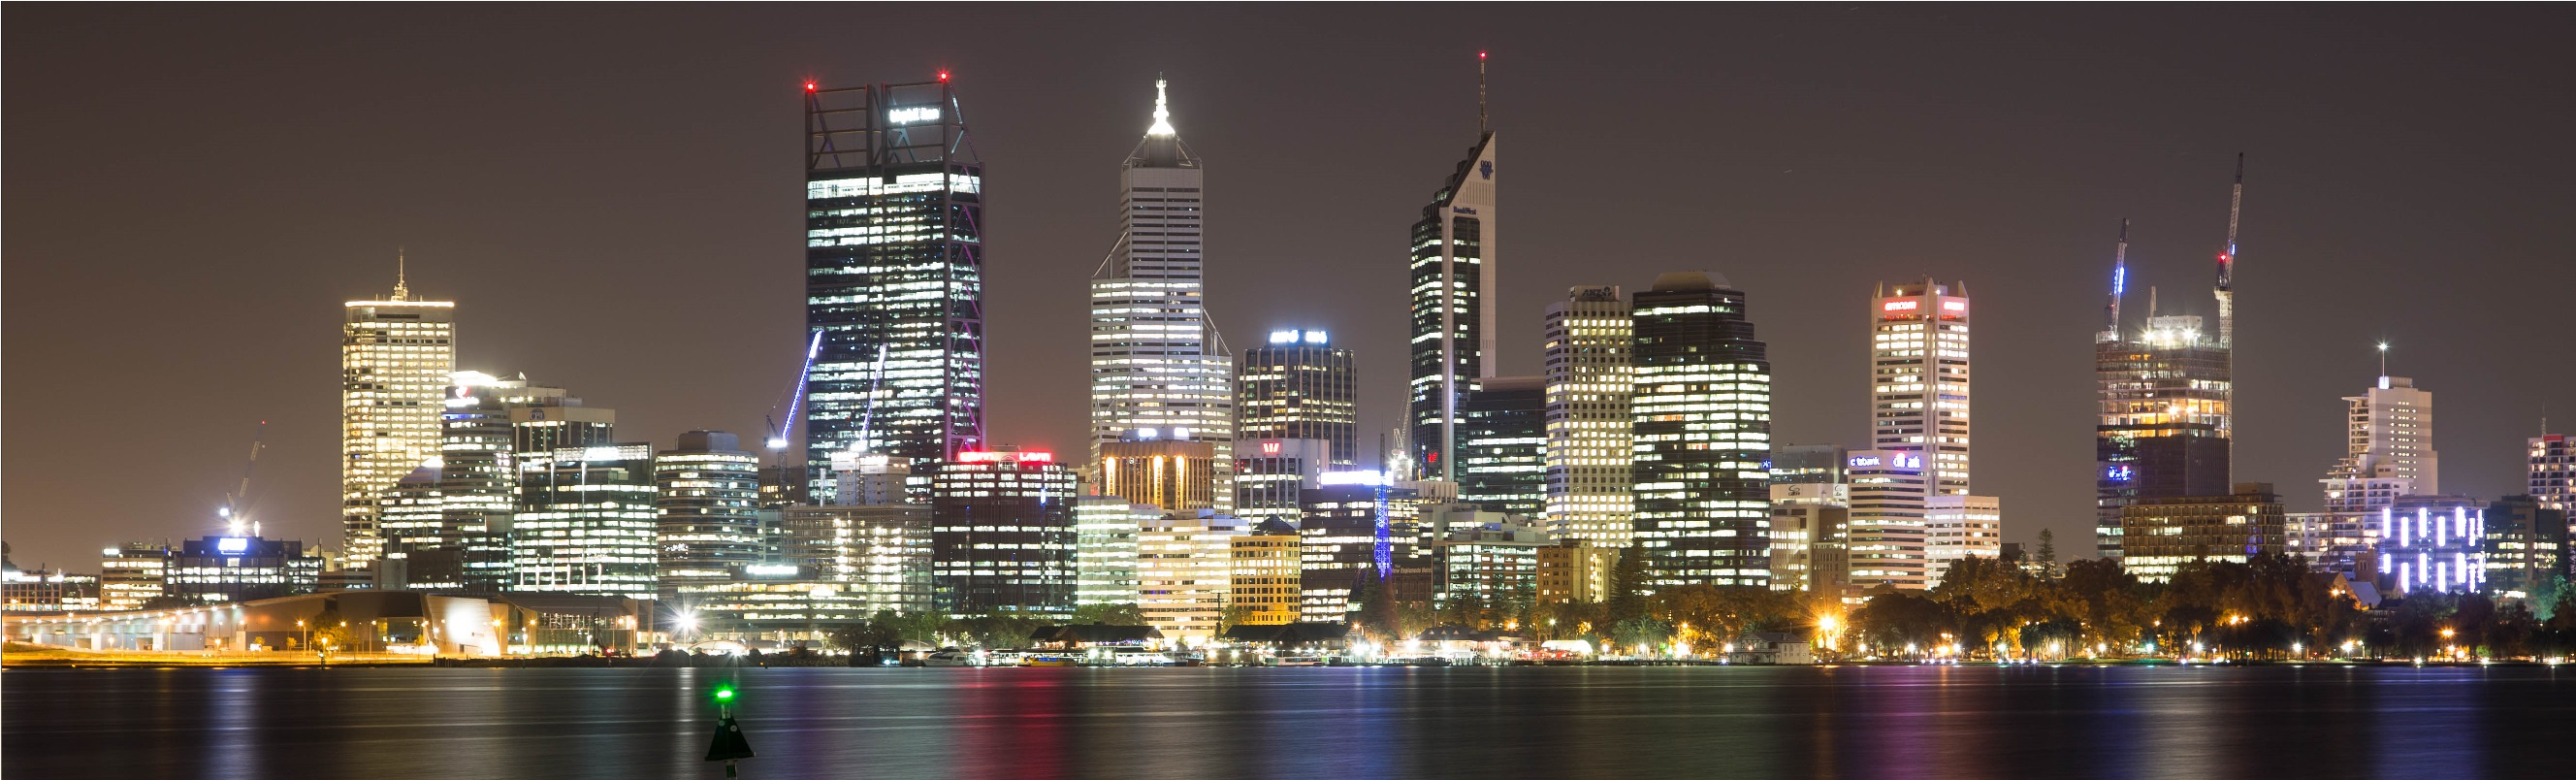 800px-Perth_Skyline_night